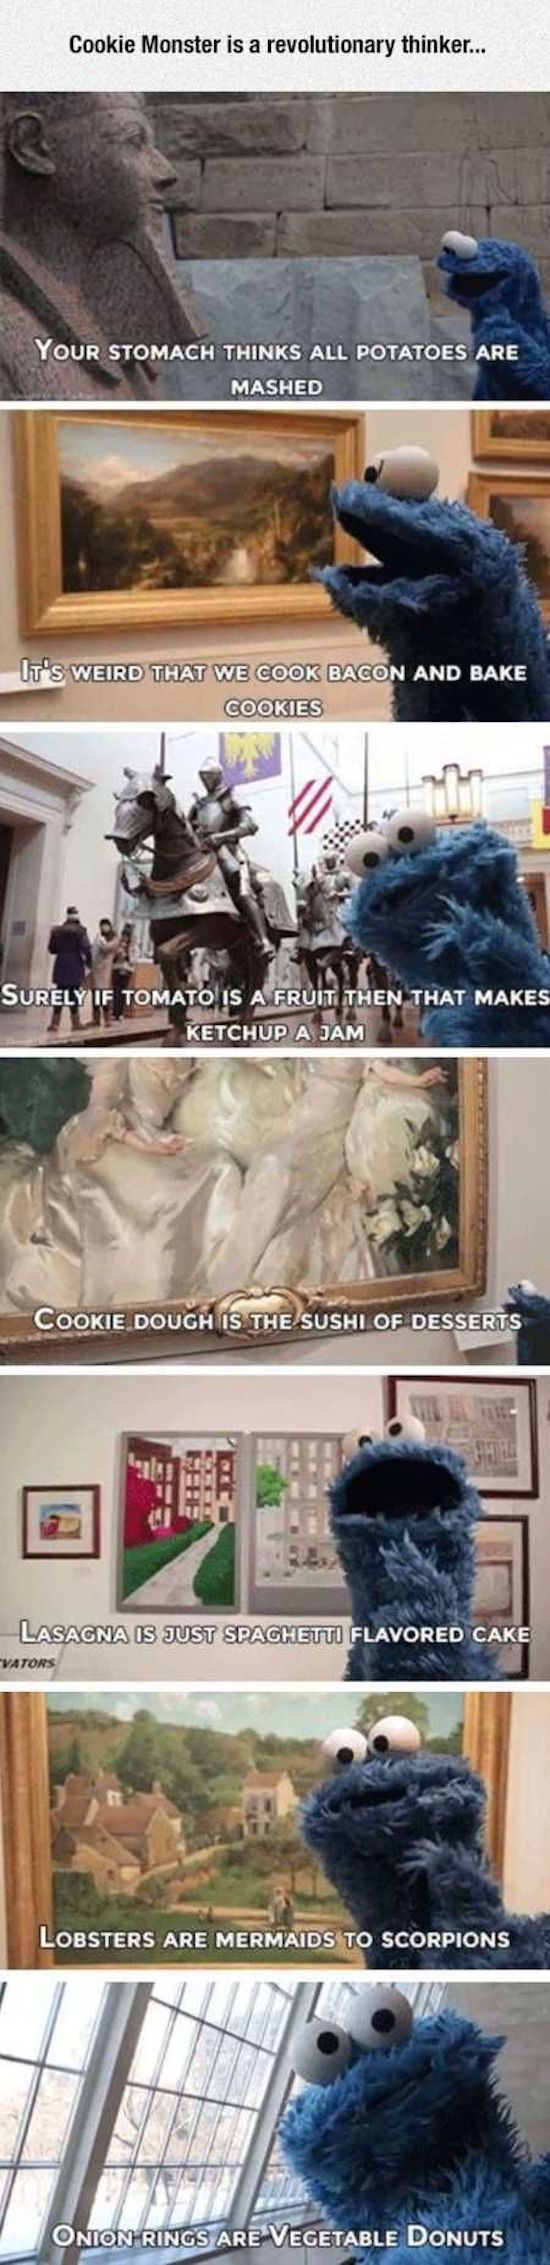 Cookie monster is truly an unconventional thinker...